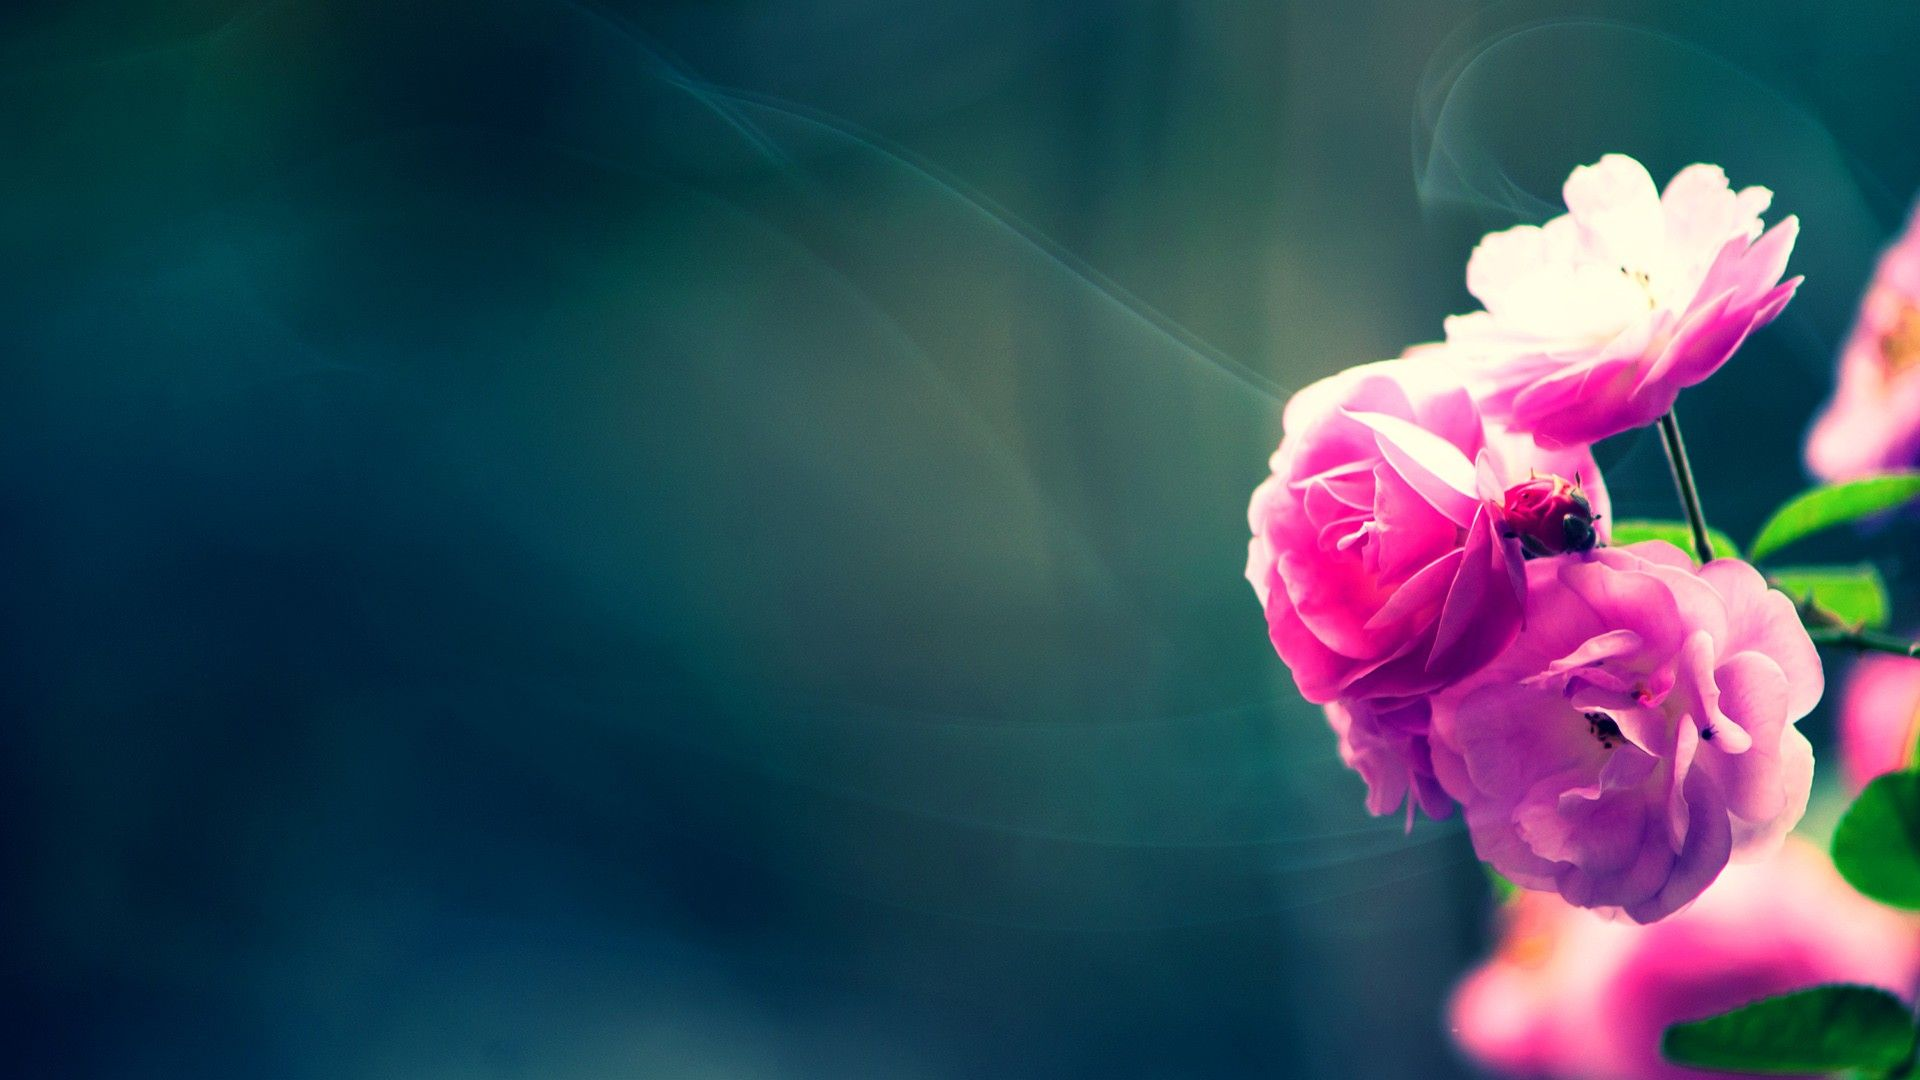 HD Flowers S Wallpapers - http://hdwallpapersf.com/hd ...